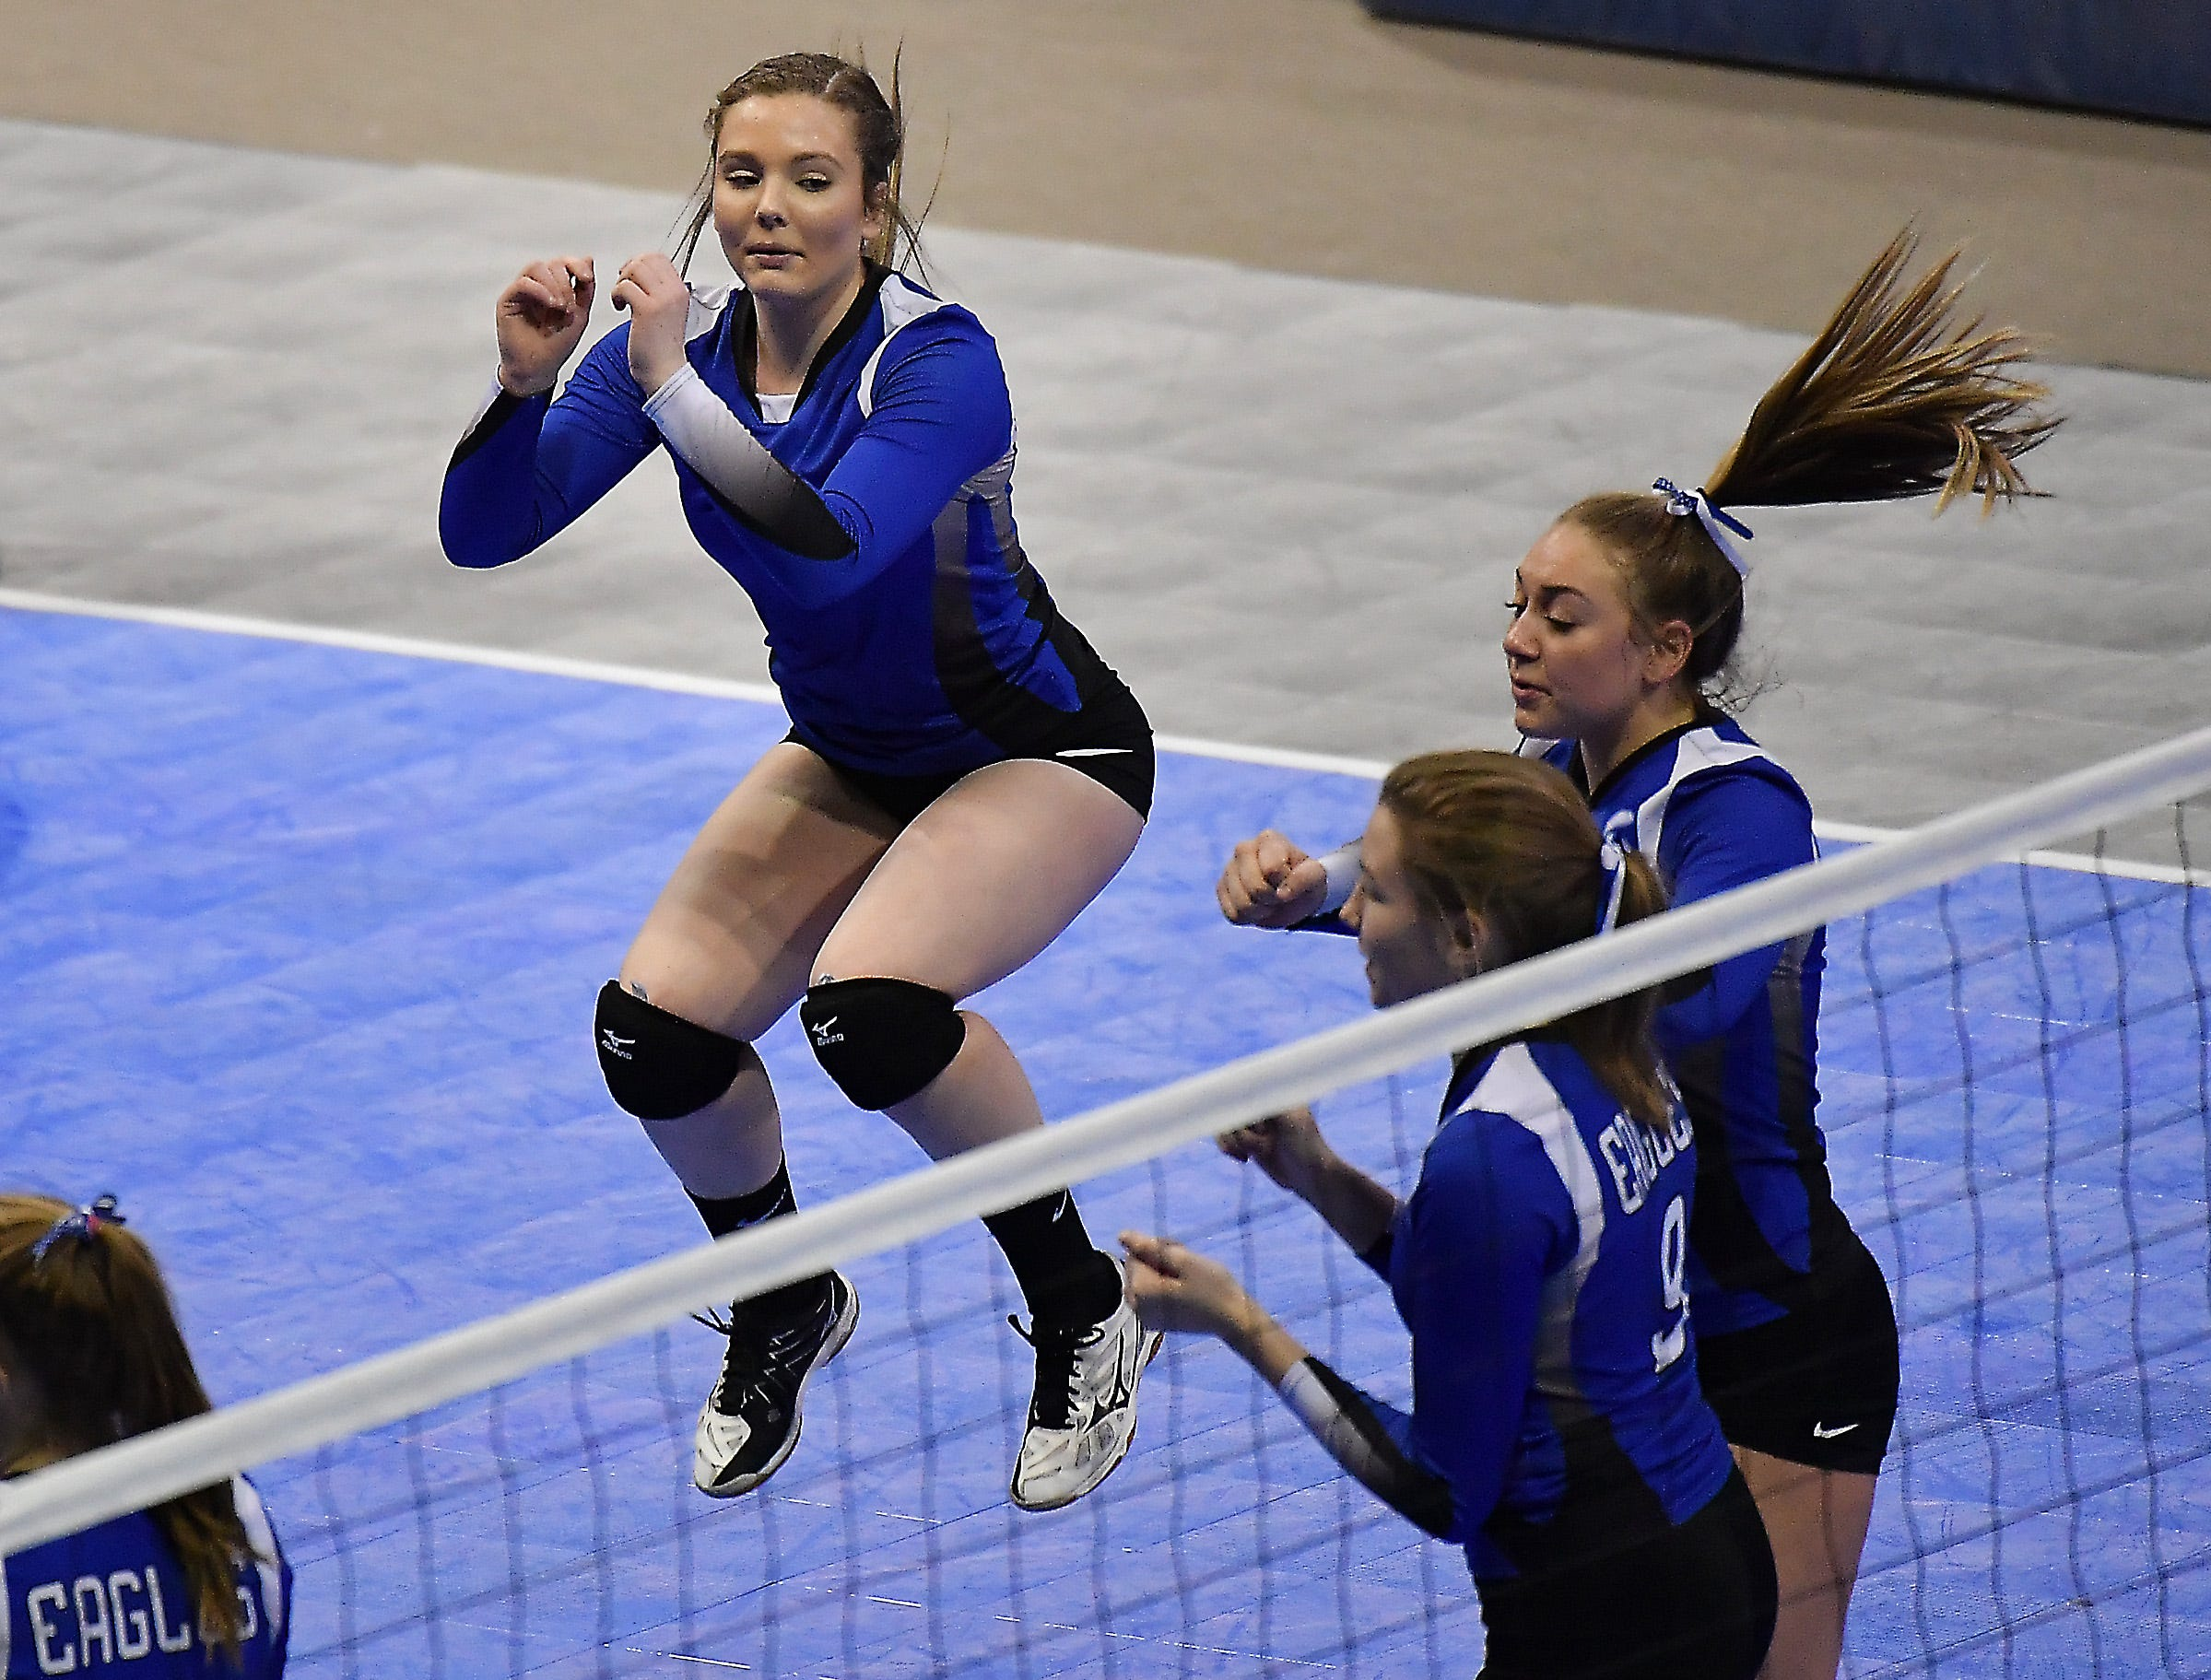 Fairfield's Cheyenne Maddox leaps in celebration in a match against Deer Lodge at the All-Class State Volleyball Tournament at the Brick Breeden Fieldhouse in Bozeman.